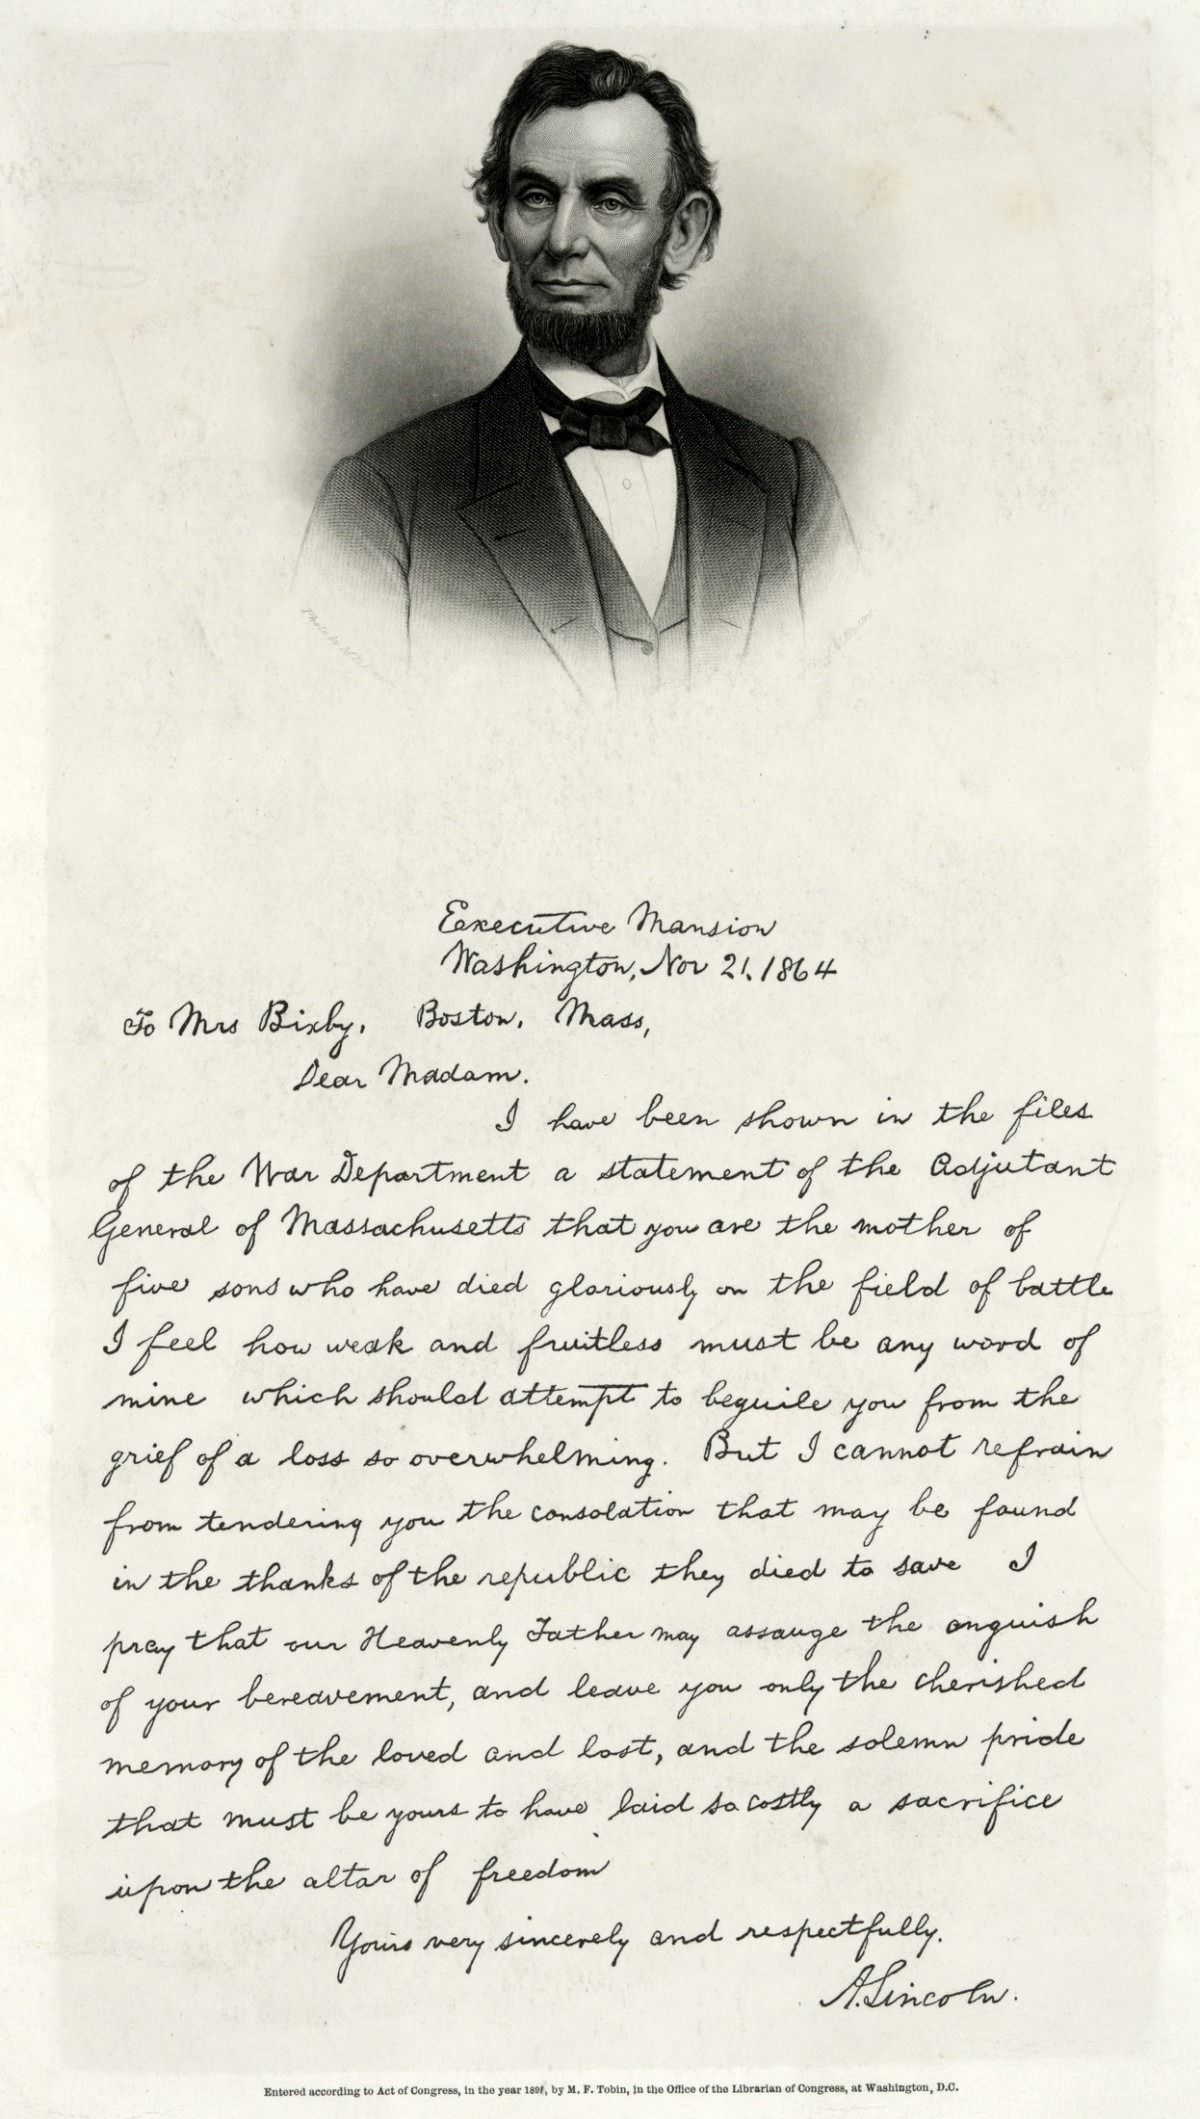 Abraham LincolnS Letter Of Condolence To Mrs Bixby